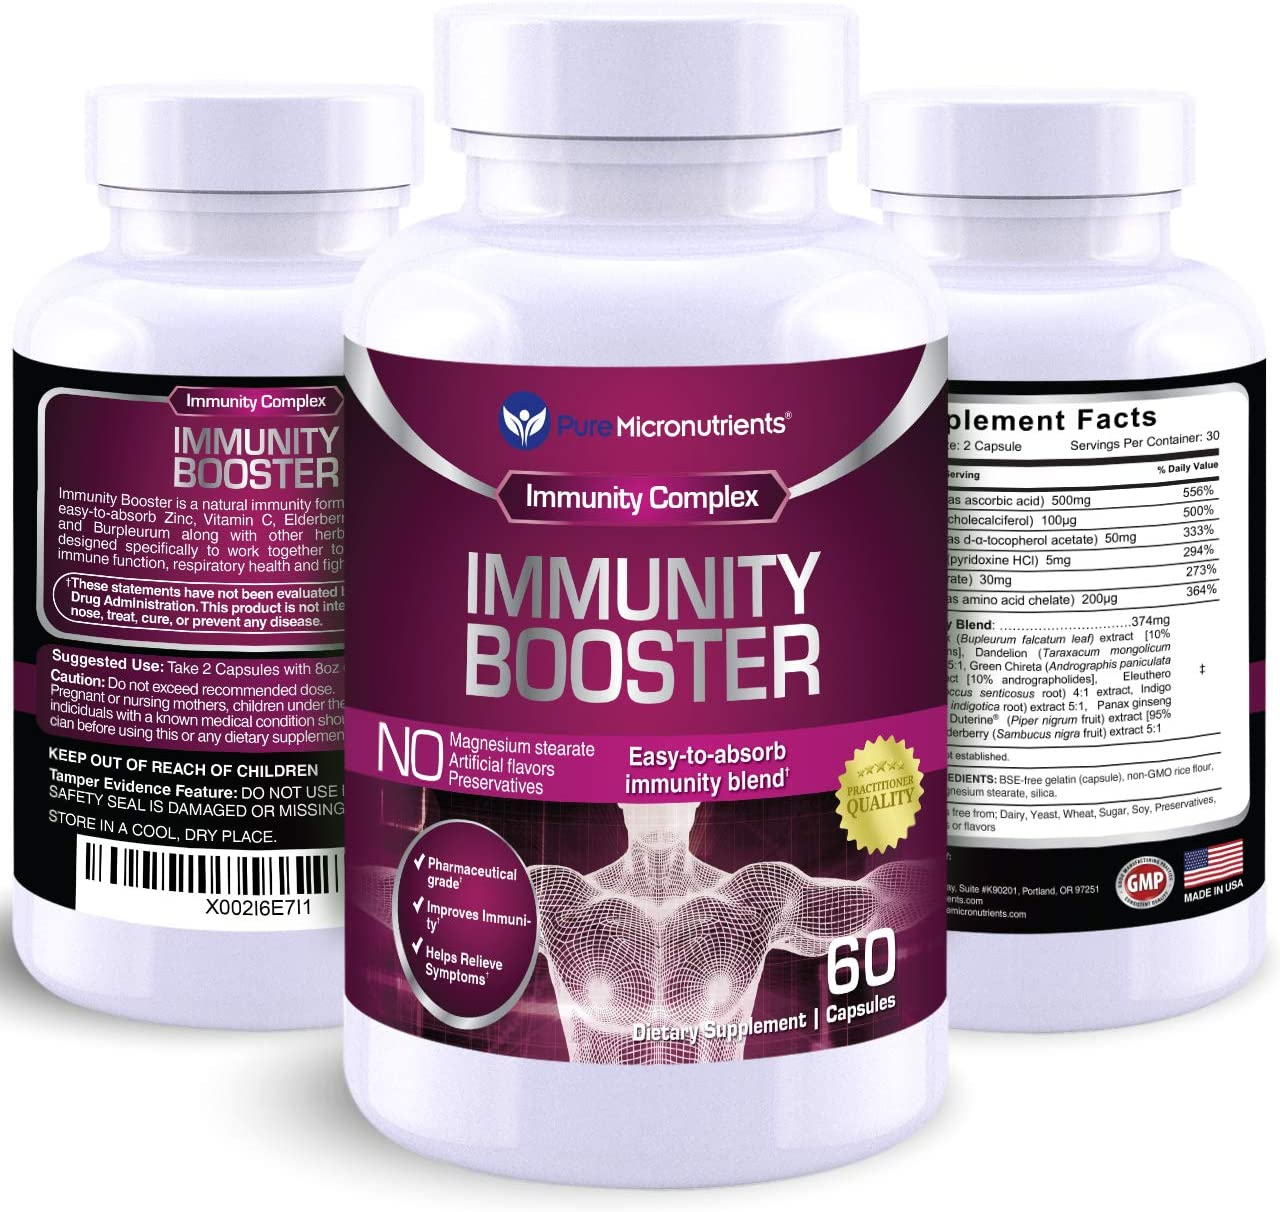 Immunity Booster Vitamins - Zinc, Elderberry, Andrographis, Vitamin C, B6, D E Multivitamin for Immune Support - Powerful Antioxidant - Body Defence Supplement - 60 Cap - Pure Micronutrients